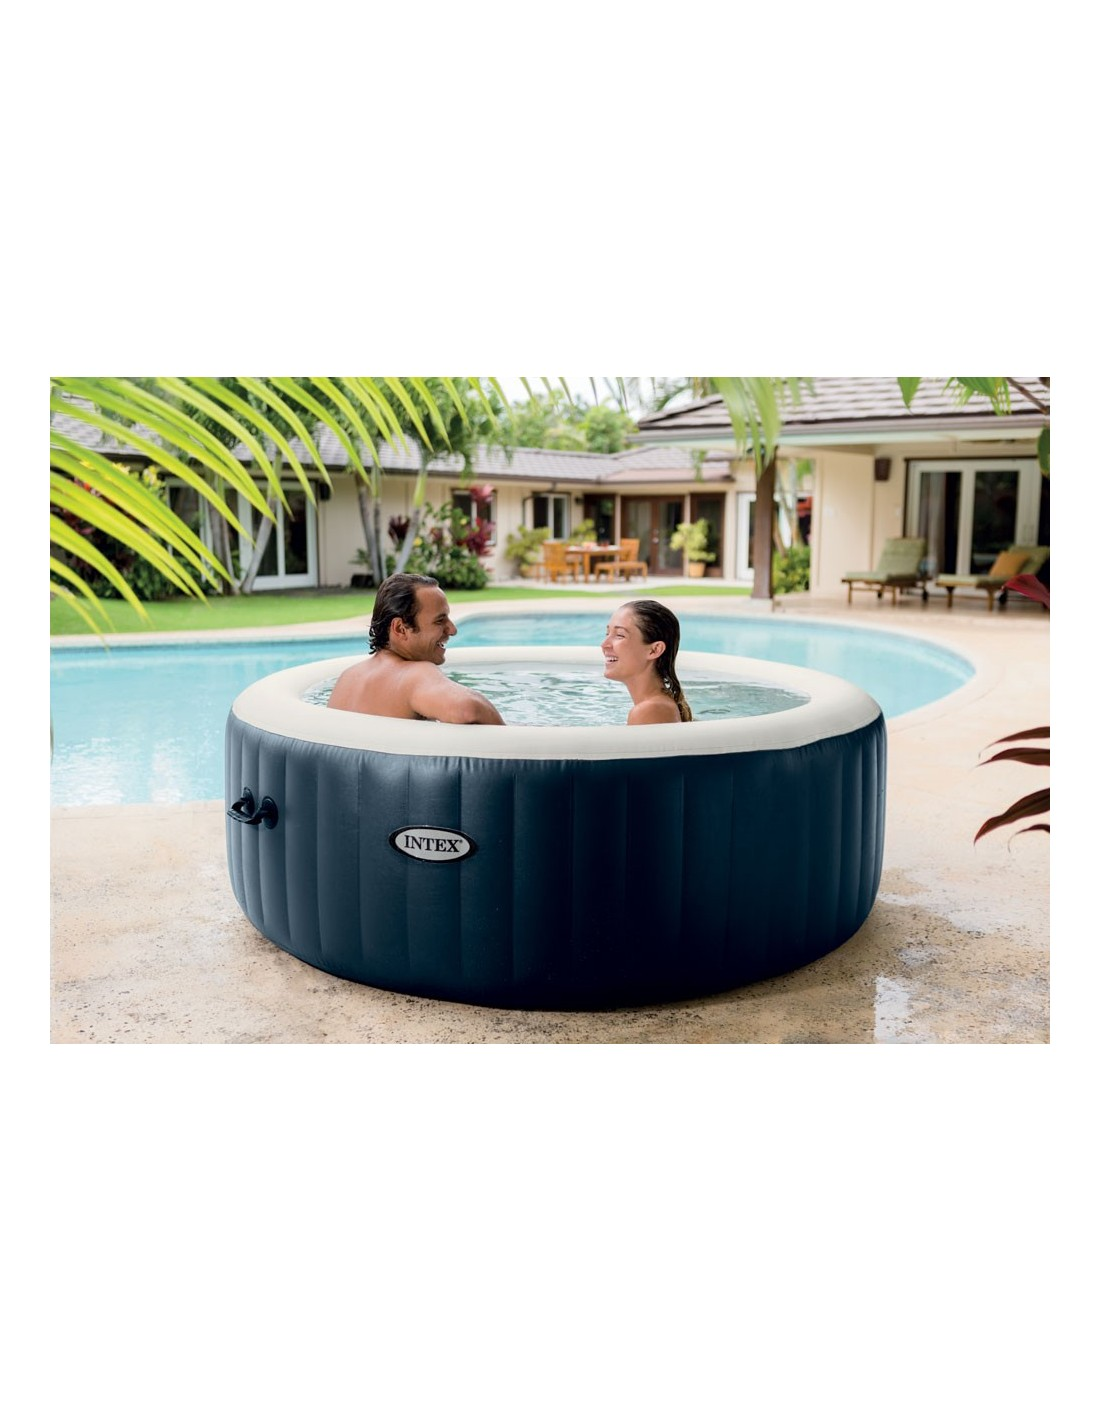 Spa gonflable rond 6 places intex - Spa gonflable intex 6 places ...